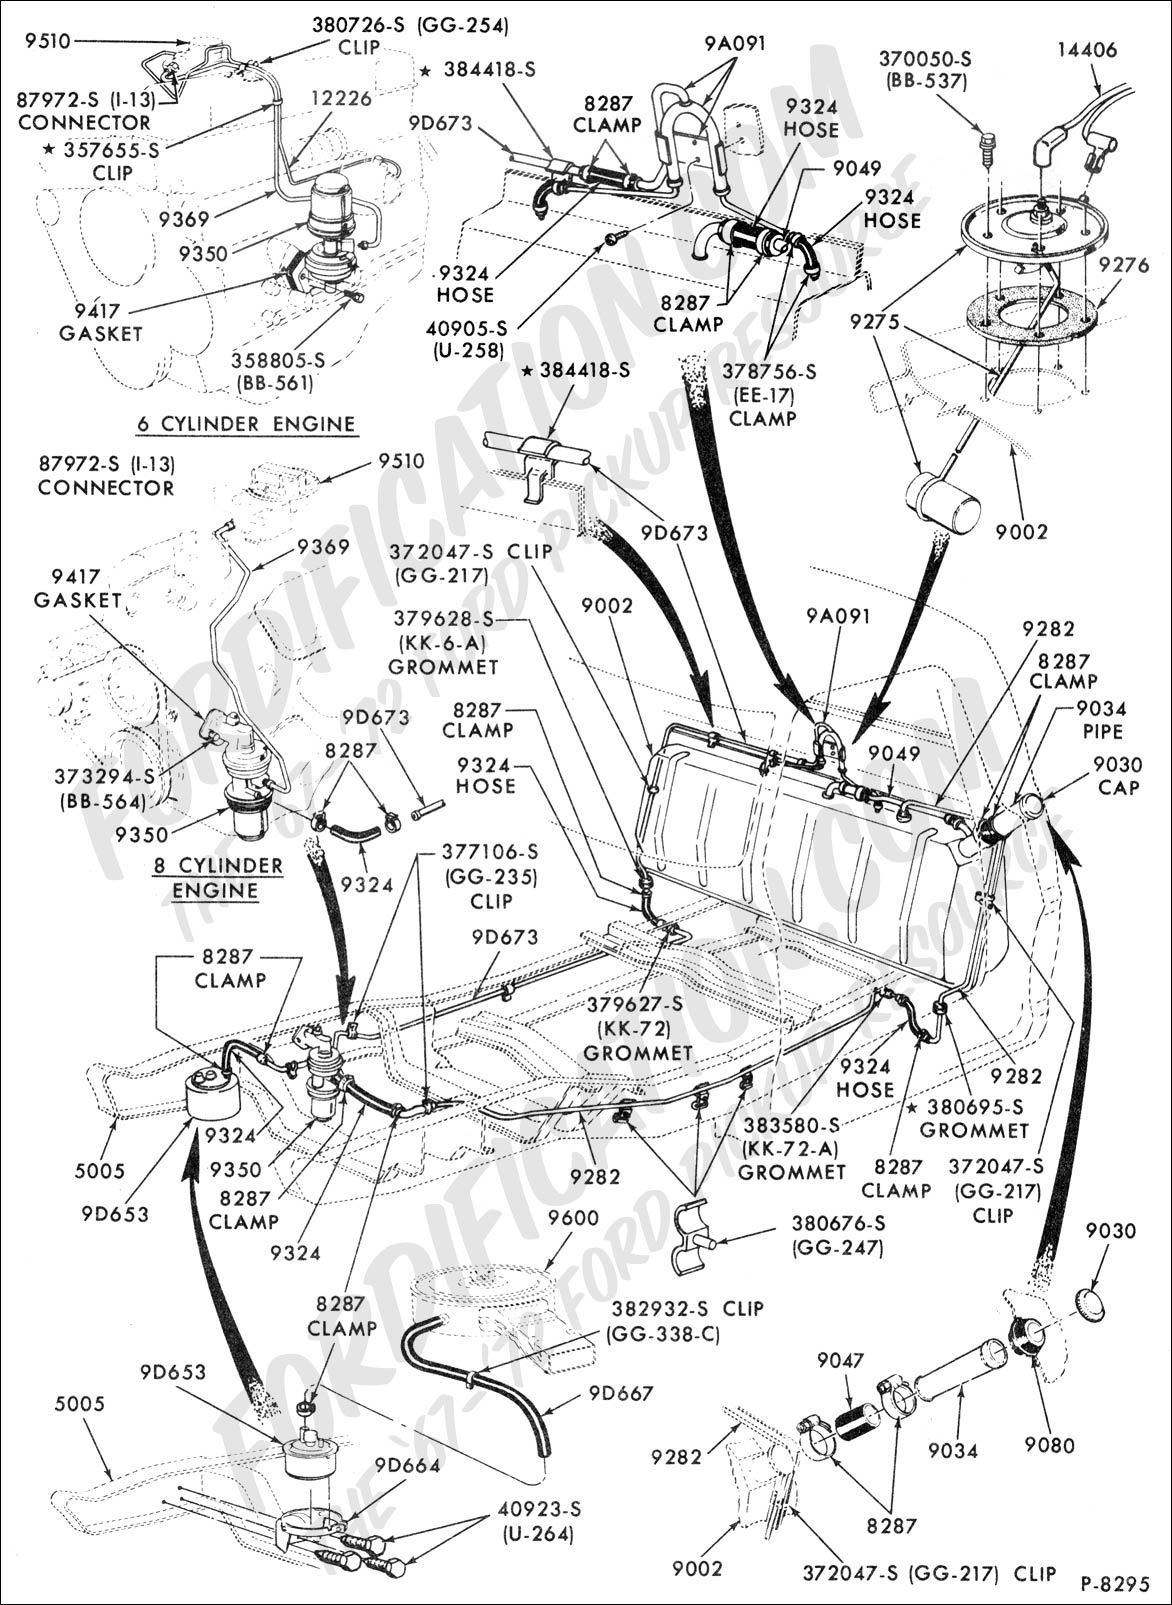 1989 F250 Engine Diagram Wiring Library Mustang Underhood Ford Truck Technical Drawings And Schematics Section E Related Components